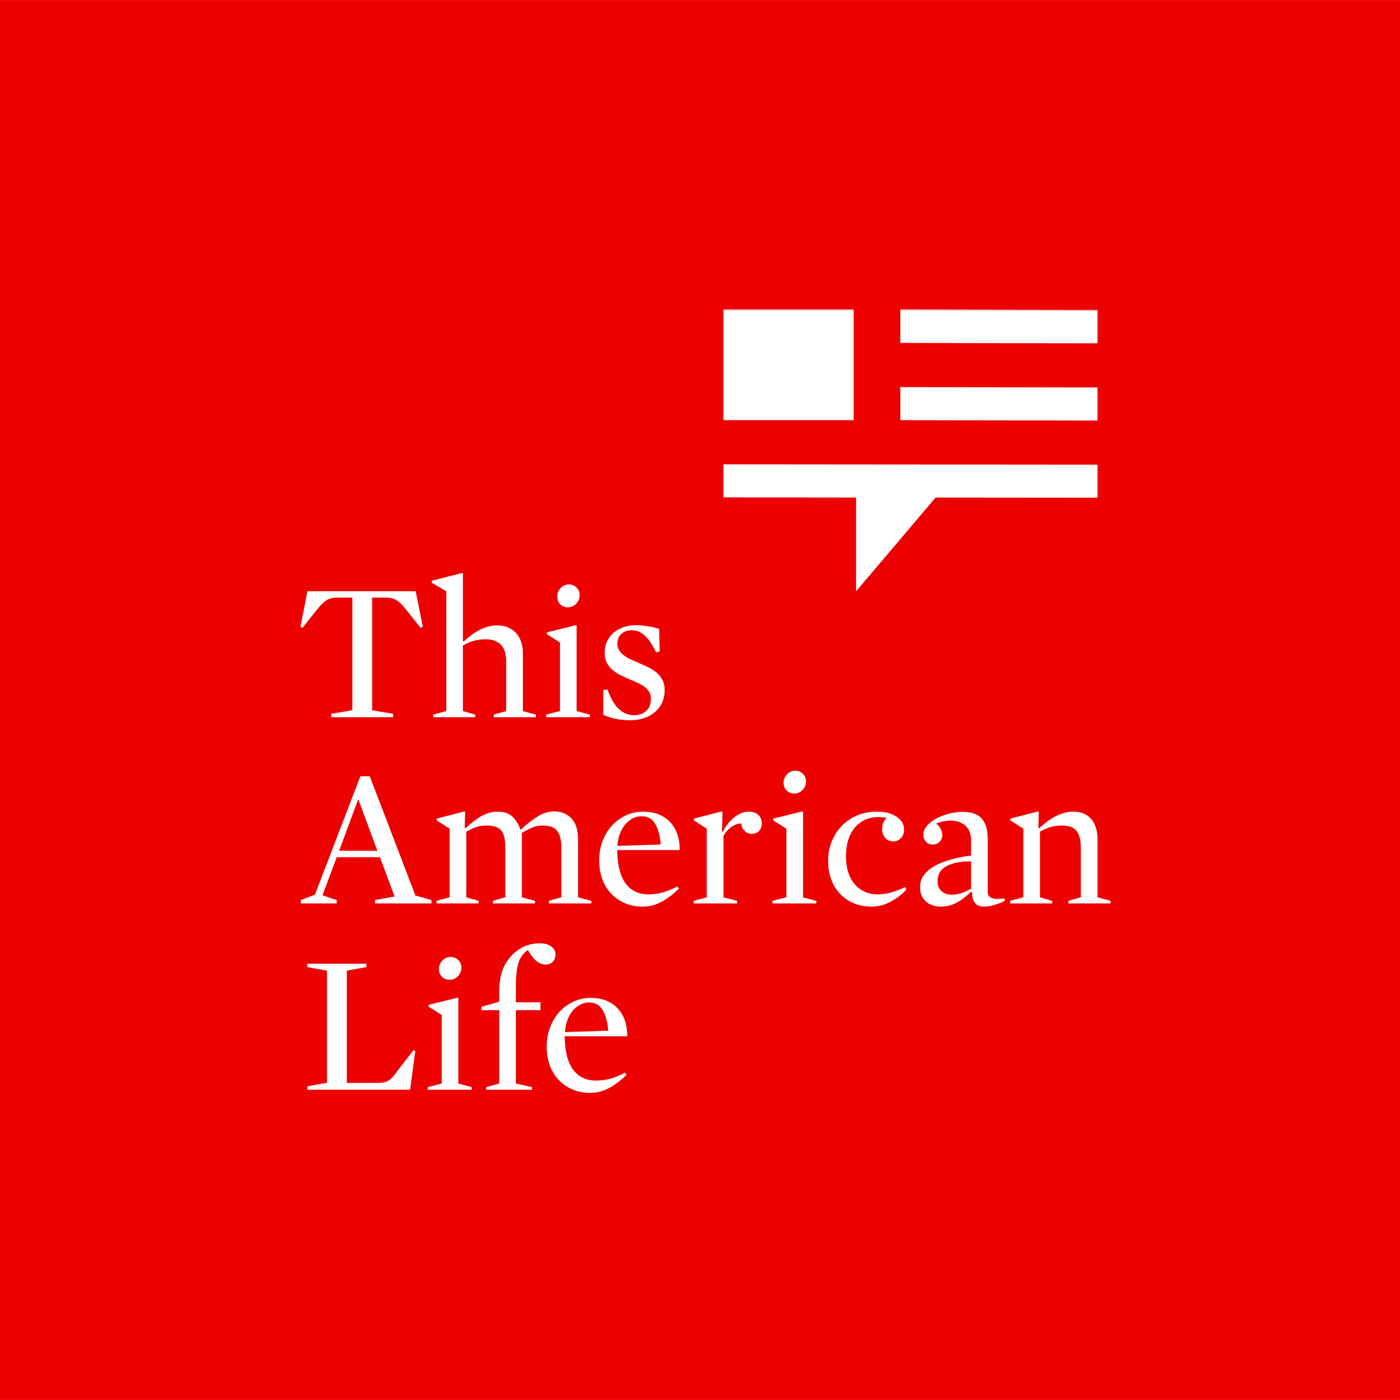 This American Life, by Ira Glass and WBEZ Chicago.